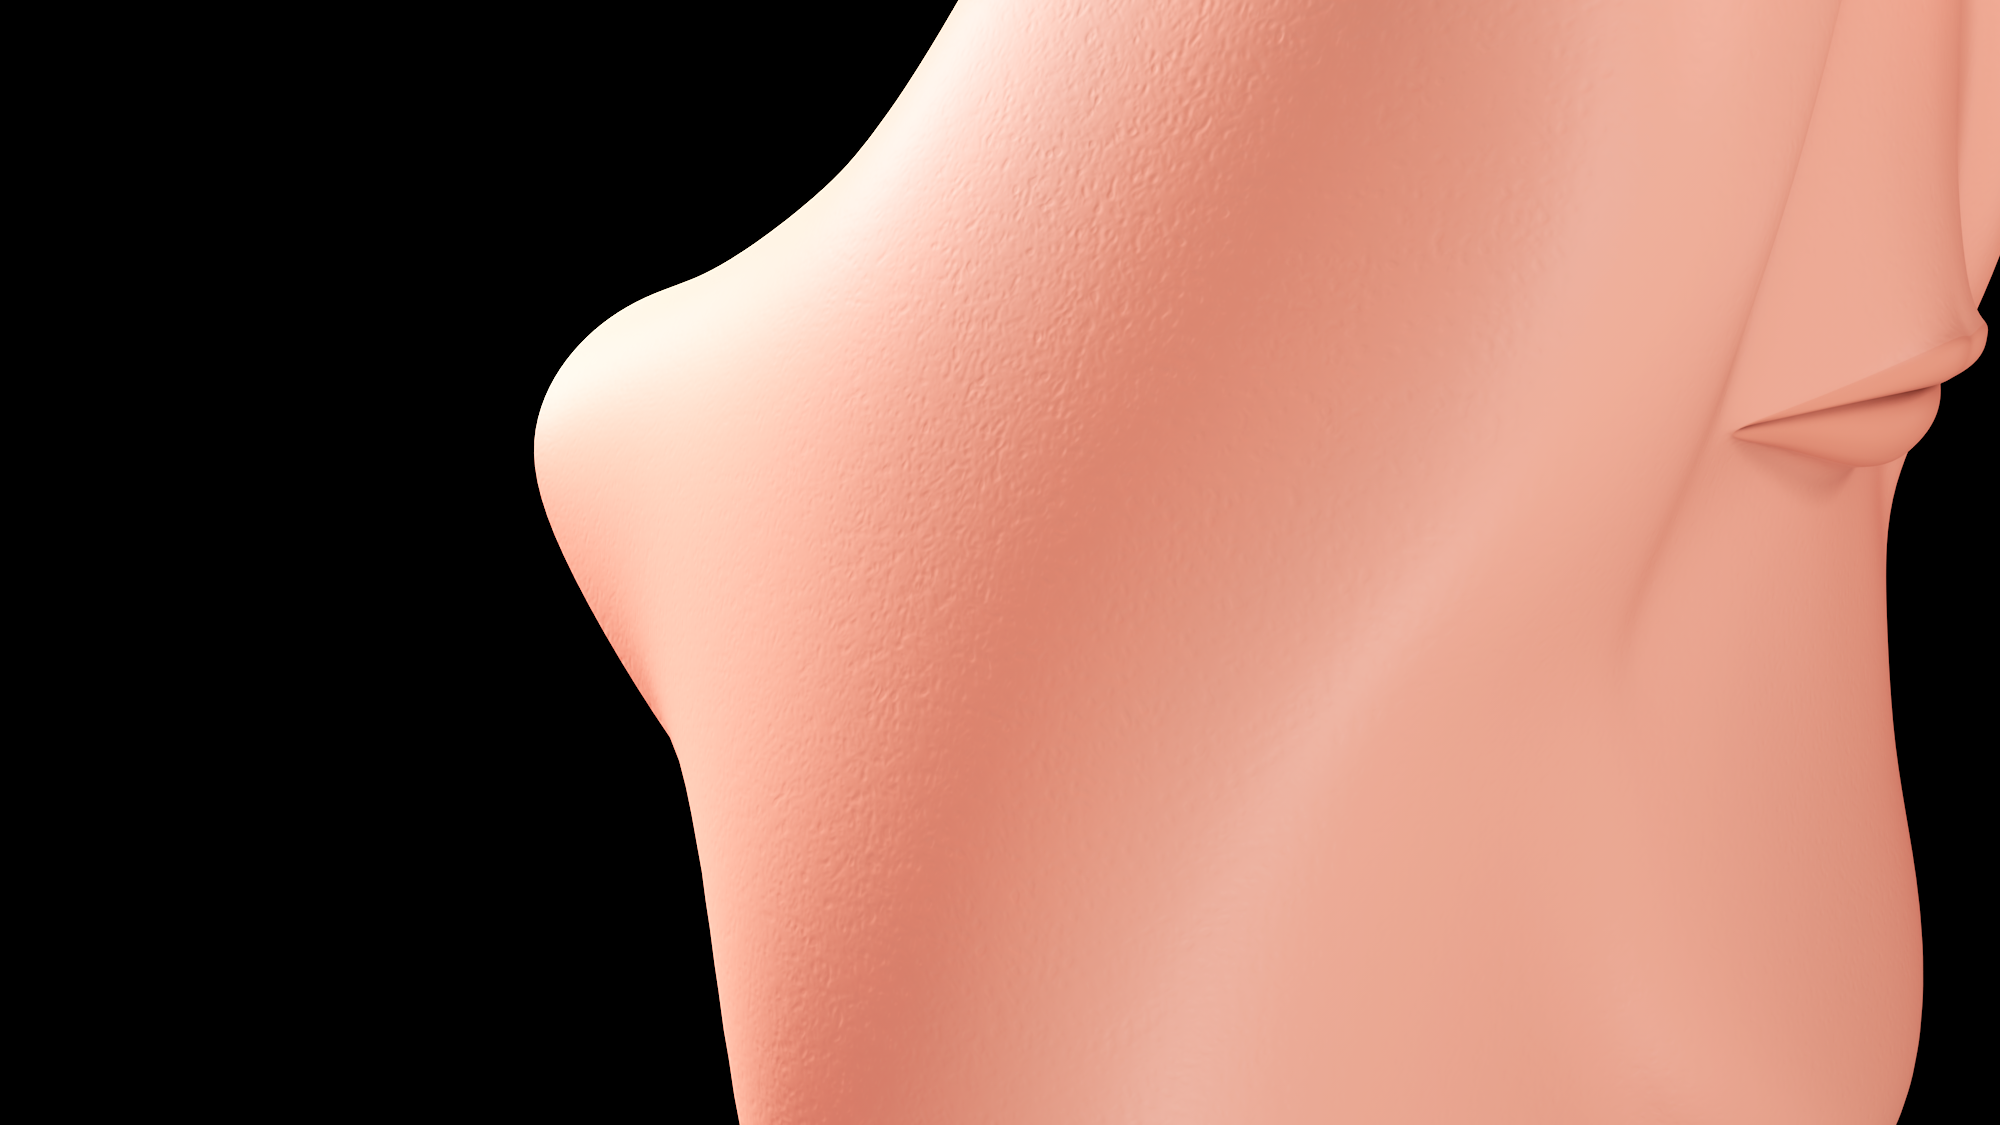 close_up_shader_test_by_vector3d-daxesfh